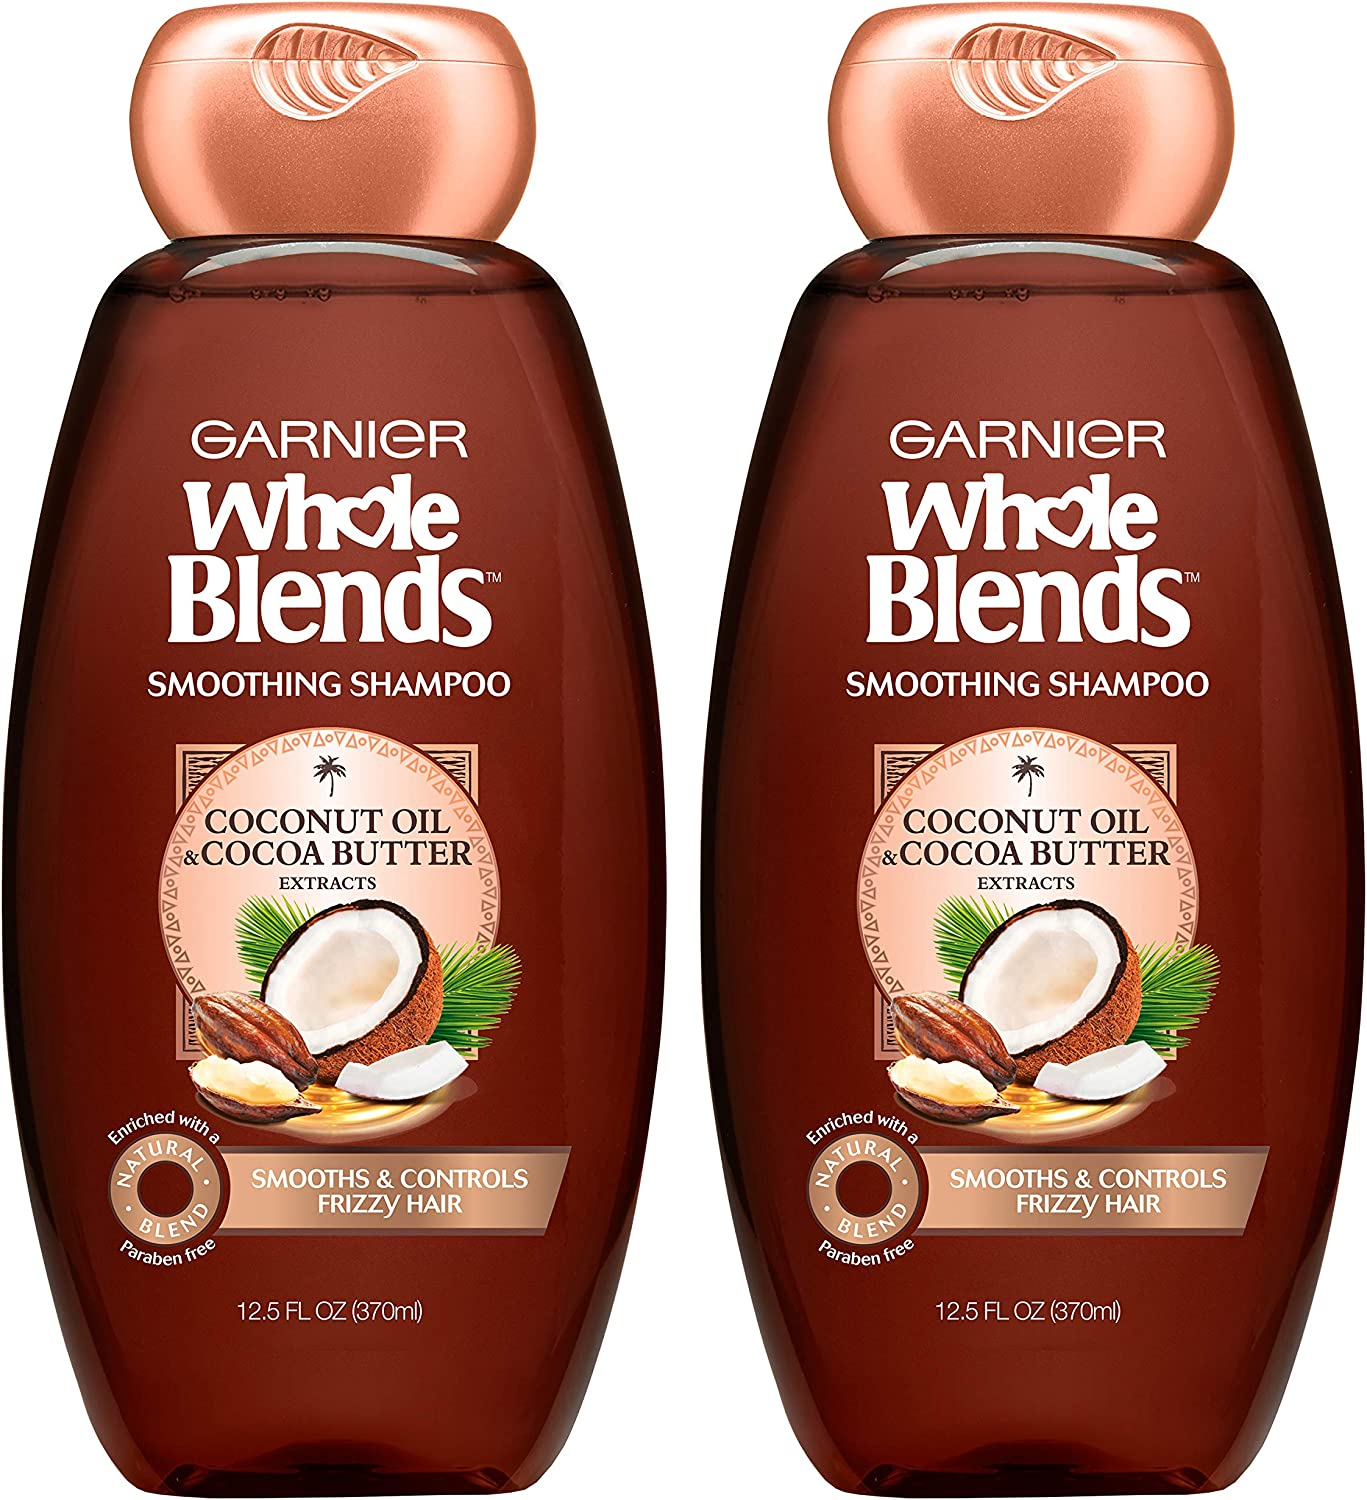 Garnier Whole Blends Smoothing Shampoo with Coconut Oil & Cocoa Butter Extracts, 12.5 Fl Oz (Packaging May Vary), 2 Count